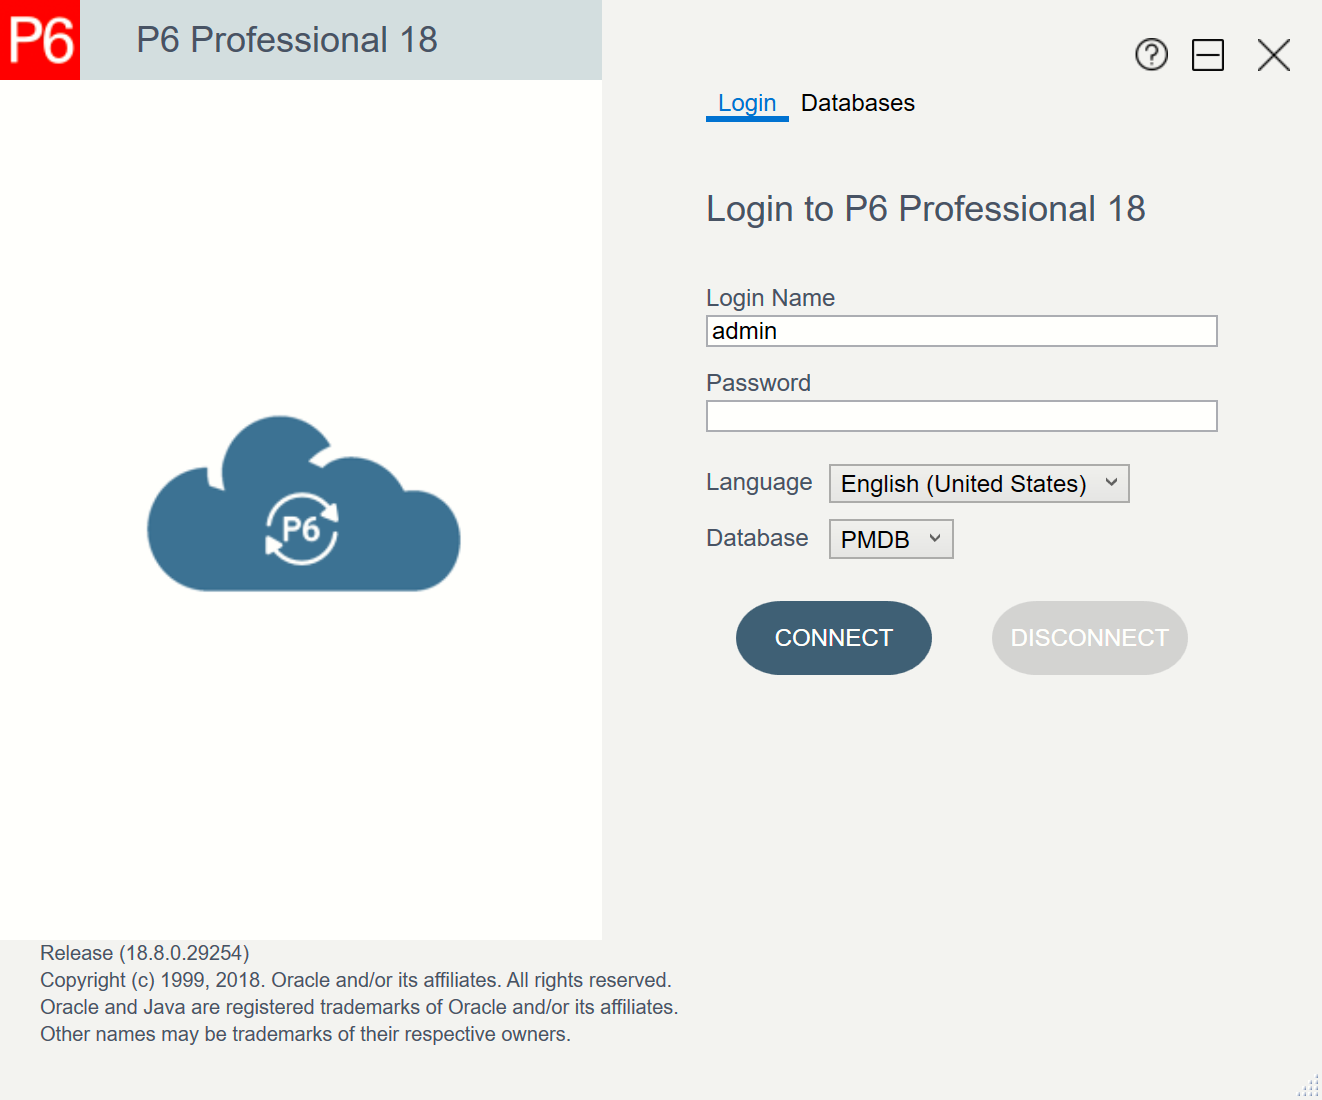 Oracle Primavera P6 Professional 18.8 Login